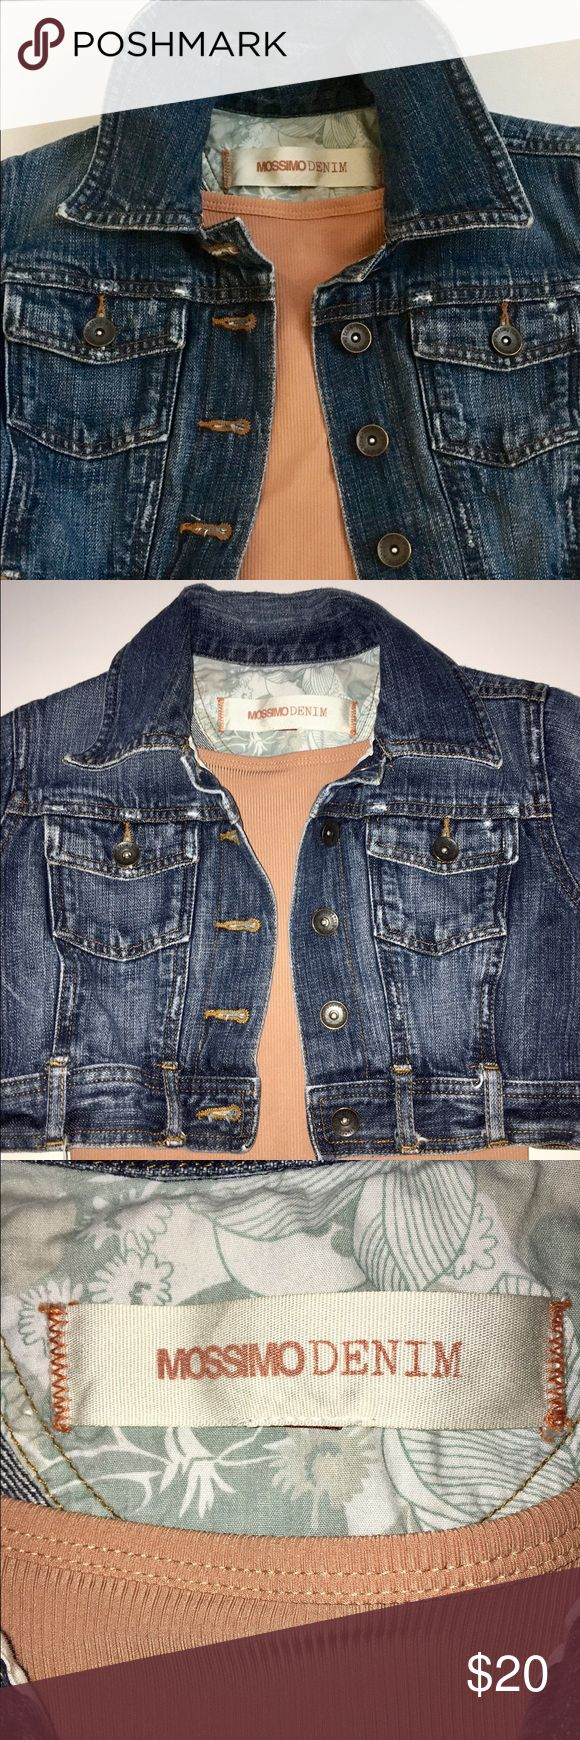 Mossimo Cropped Short Sleeve Jean Jacket This adorable Short Sleeve Cropped Jean Jacket by Mossimo was worn once and is in perfect condition. It can be worn with a belt or simply worn as a cute top! Mossimo Supply Co Jackets & Coats Jean Jackets